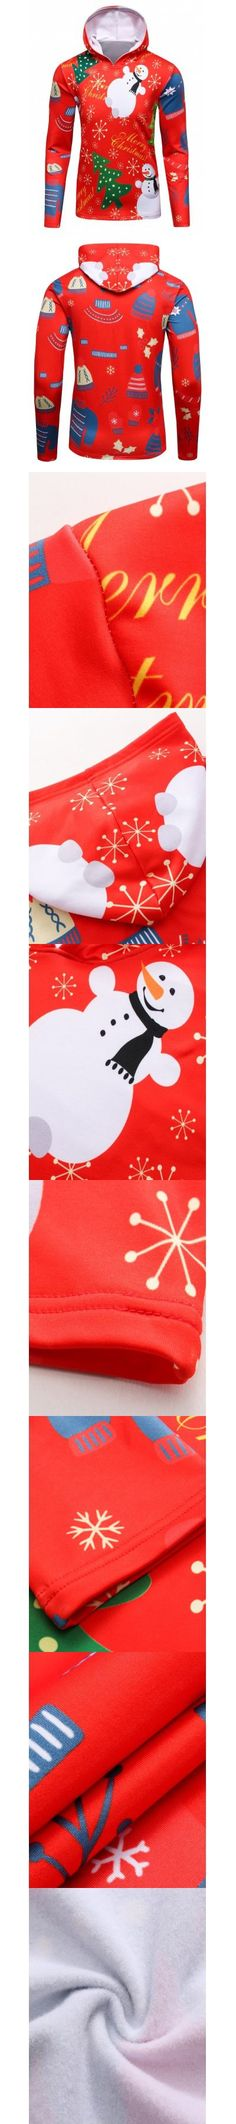 Red 3D Christmas Tree and Snowman Print Flocking Hoodie XL-$9.76